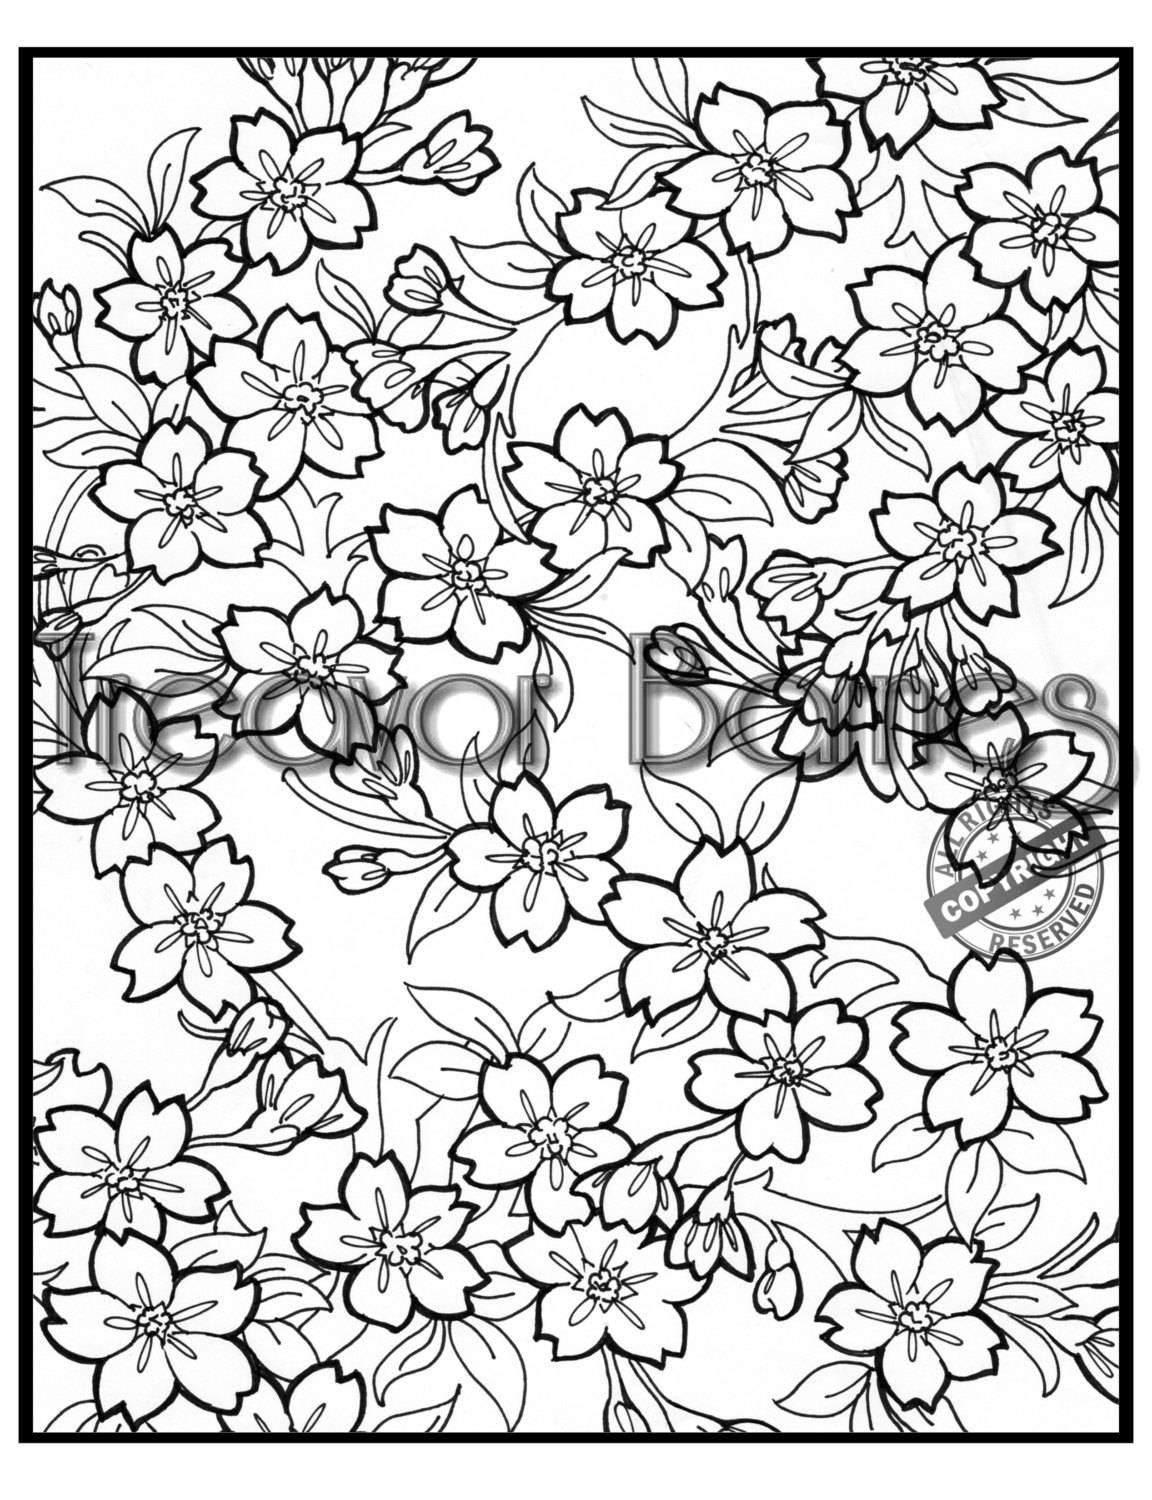 cherry blossom coloring pages cherry blossoms coloring page free printable coloring pages pages coloring cherry blossom